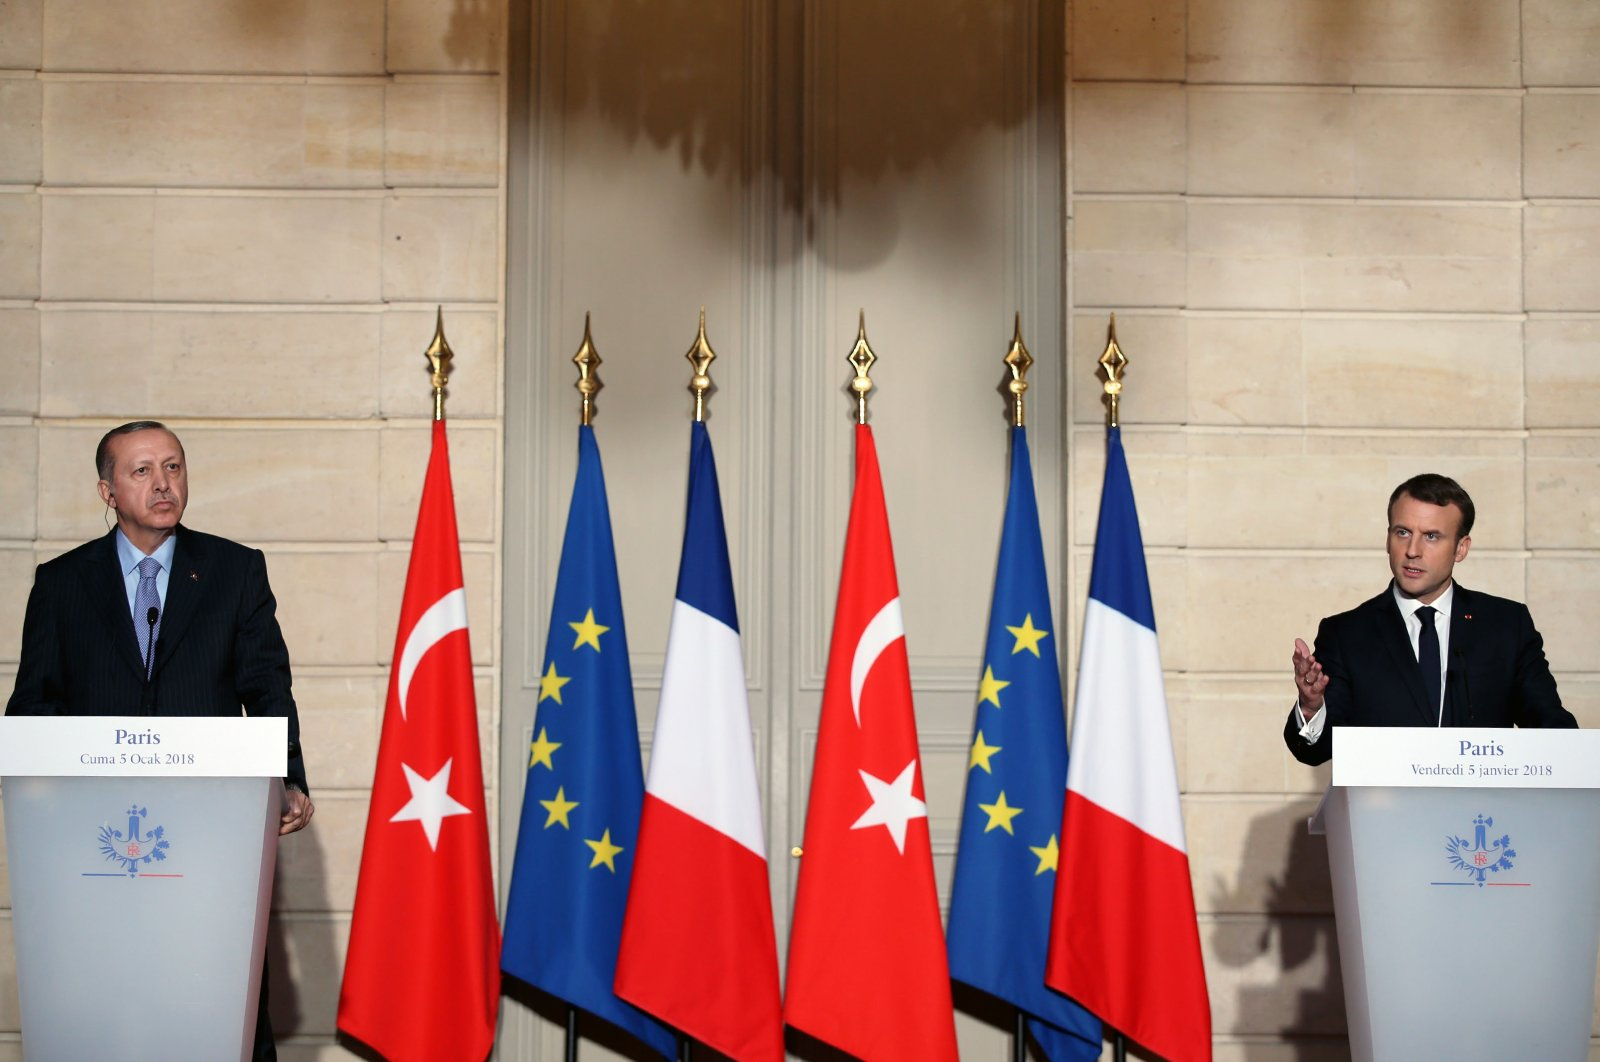 President Recep Tayyip Erdoğan speaks at a joint news conference with his French counterpart Emmanuel Macron in the capital Ankara, Turkey, May 13, 2020. (Courtesy of the Turkish Presidency)